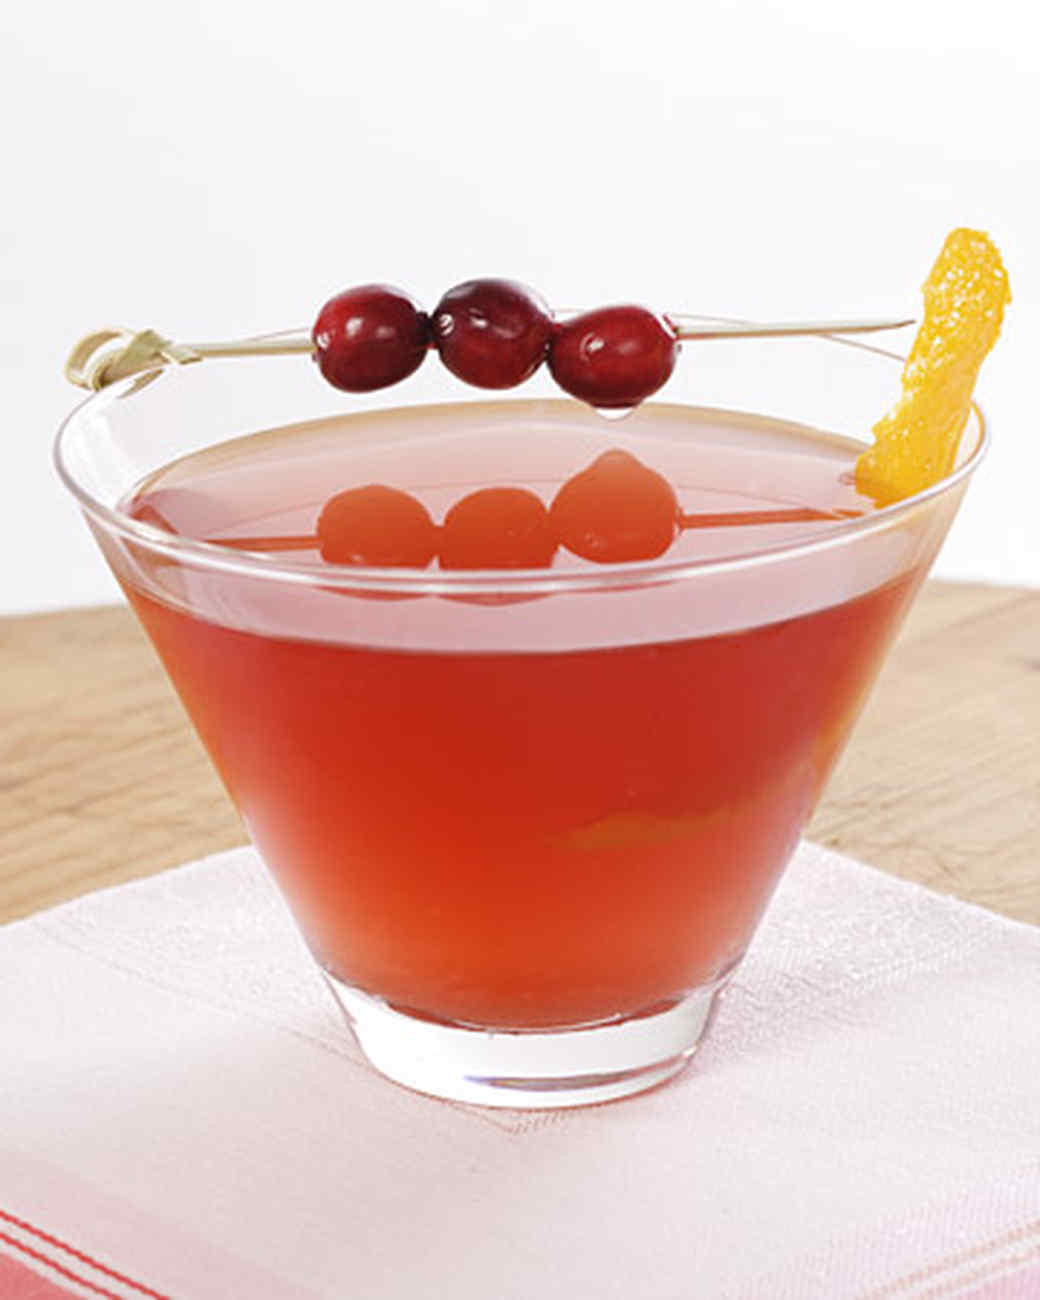 Alcoholic Drink Recipes For Thanksgiving: Best 30 Thanksgiving Alcoholic Drinks